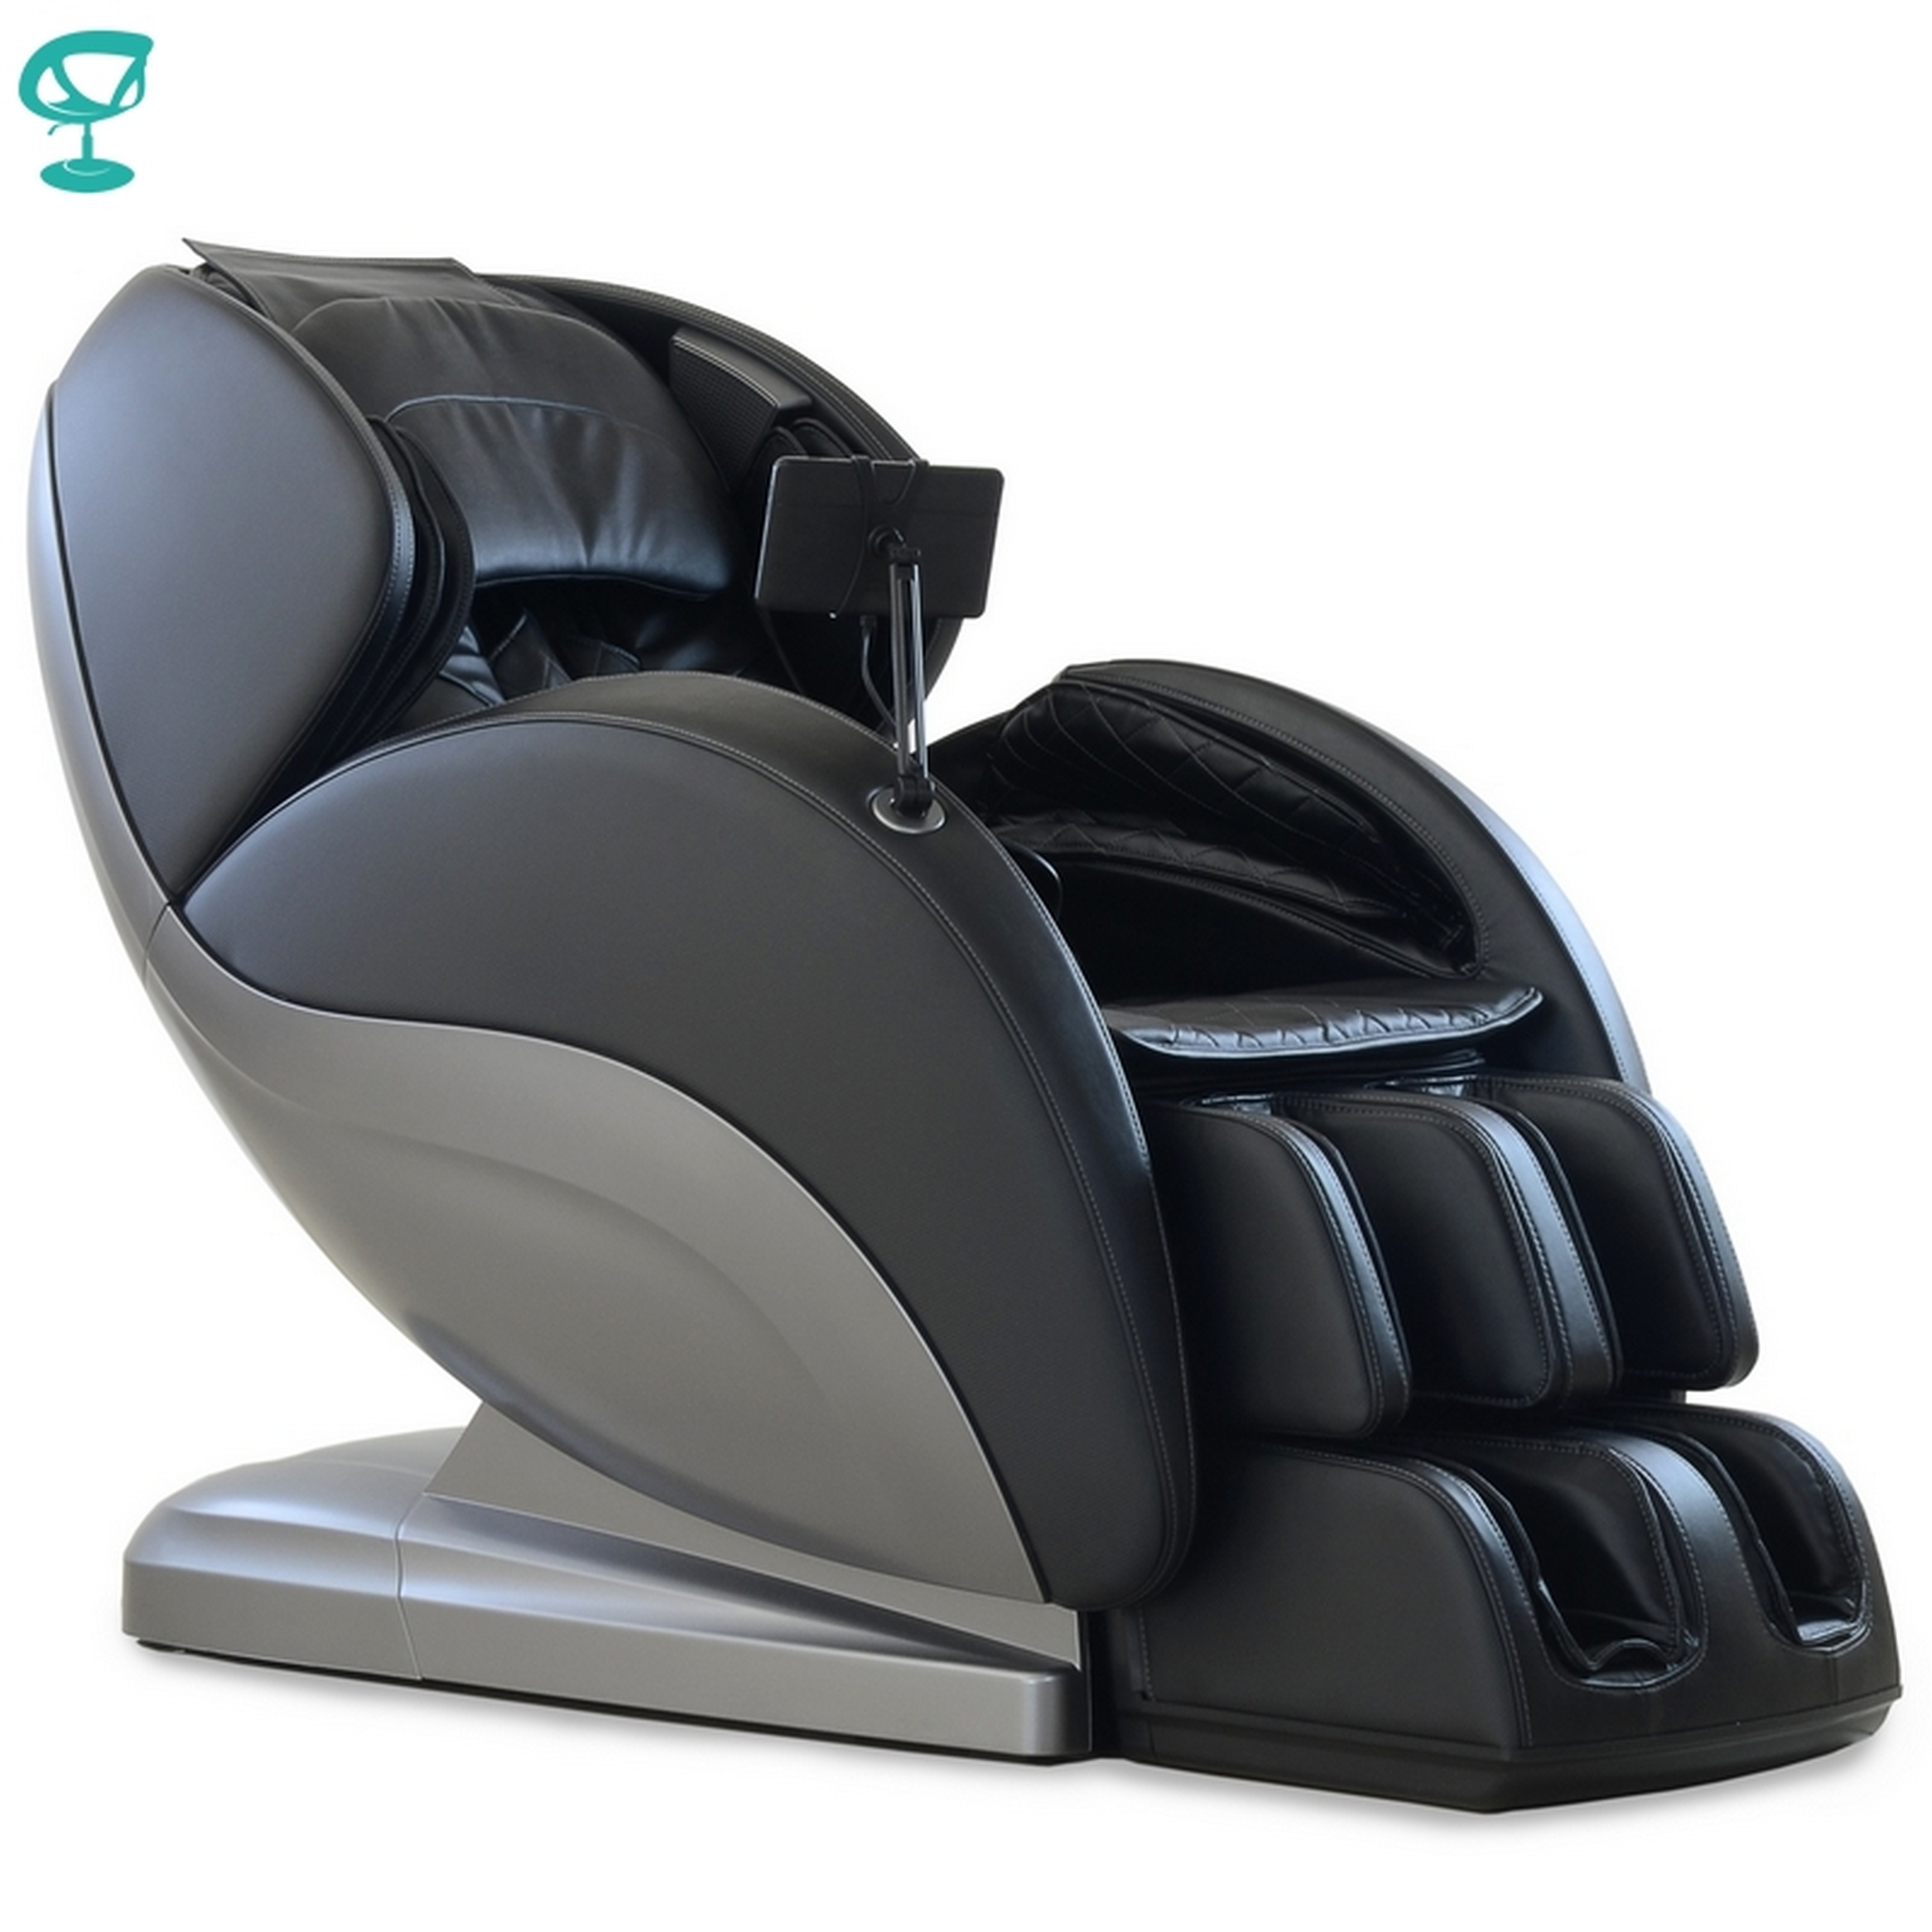 95691 Barneo PS6500 Chair Massage Black With Silver Chair Massage Chair With Massage Chair Free Shipping To Russia